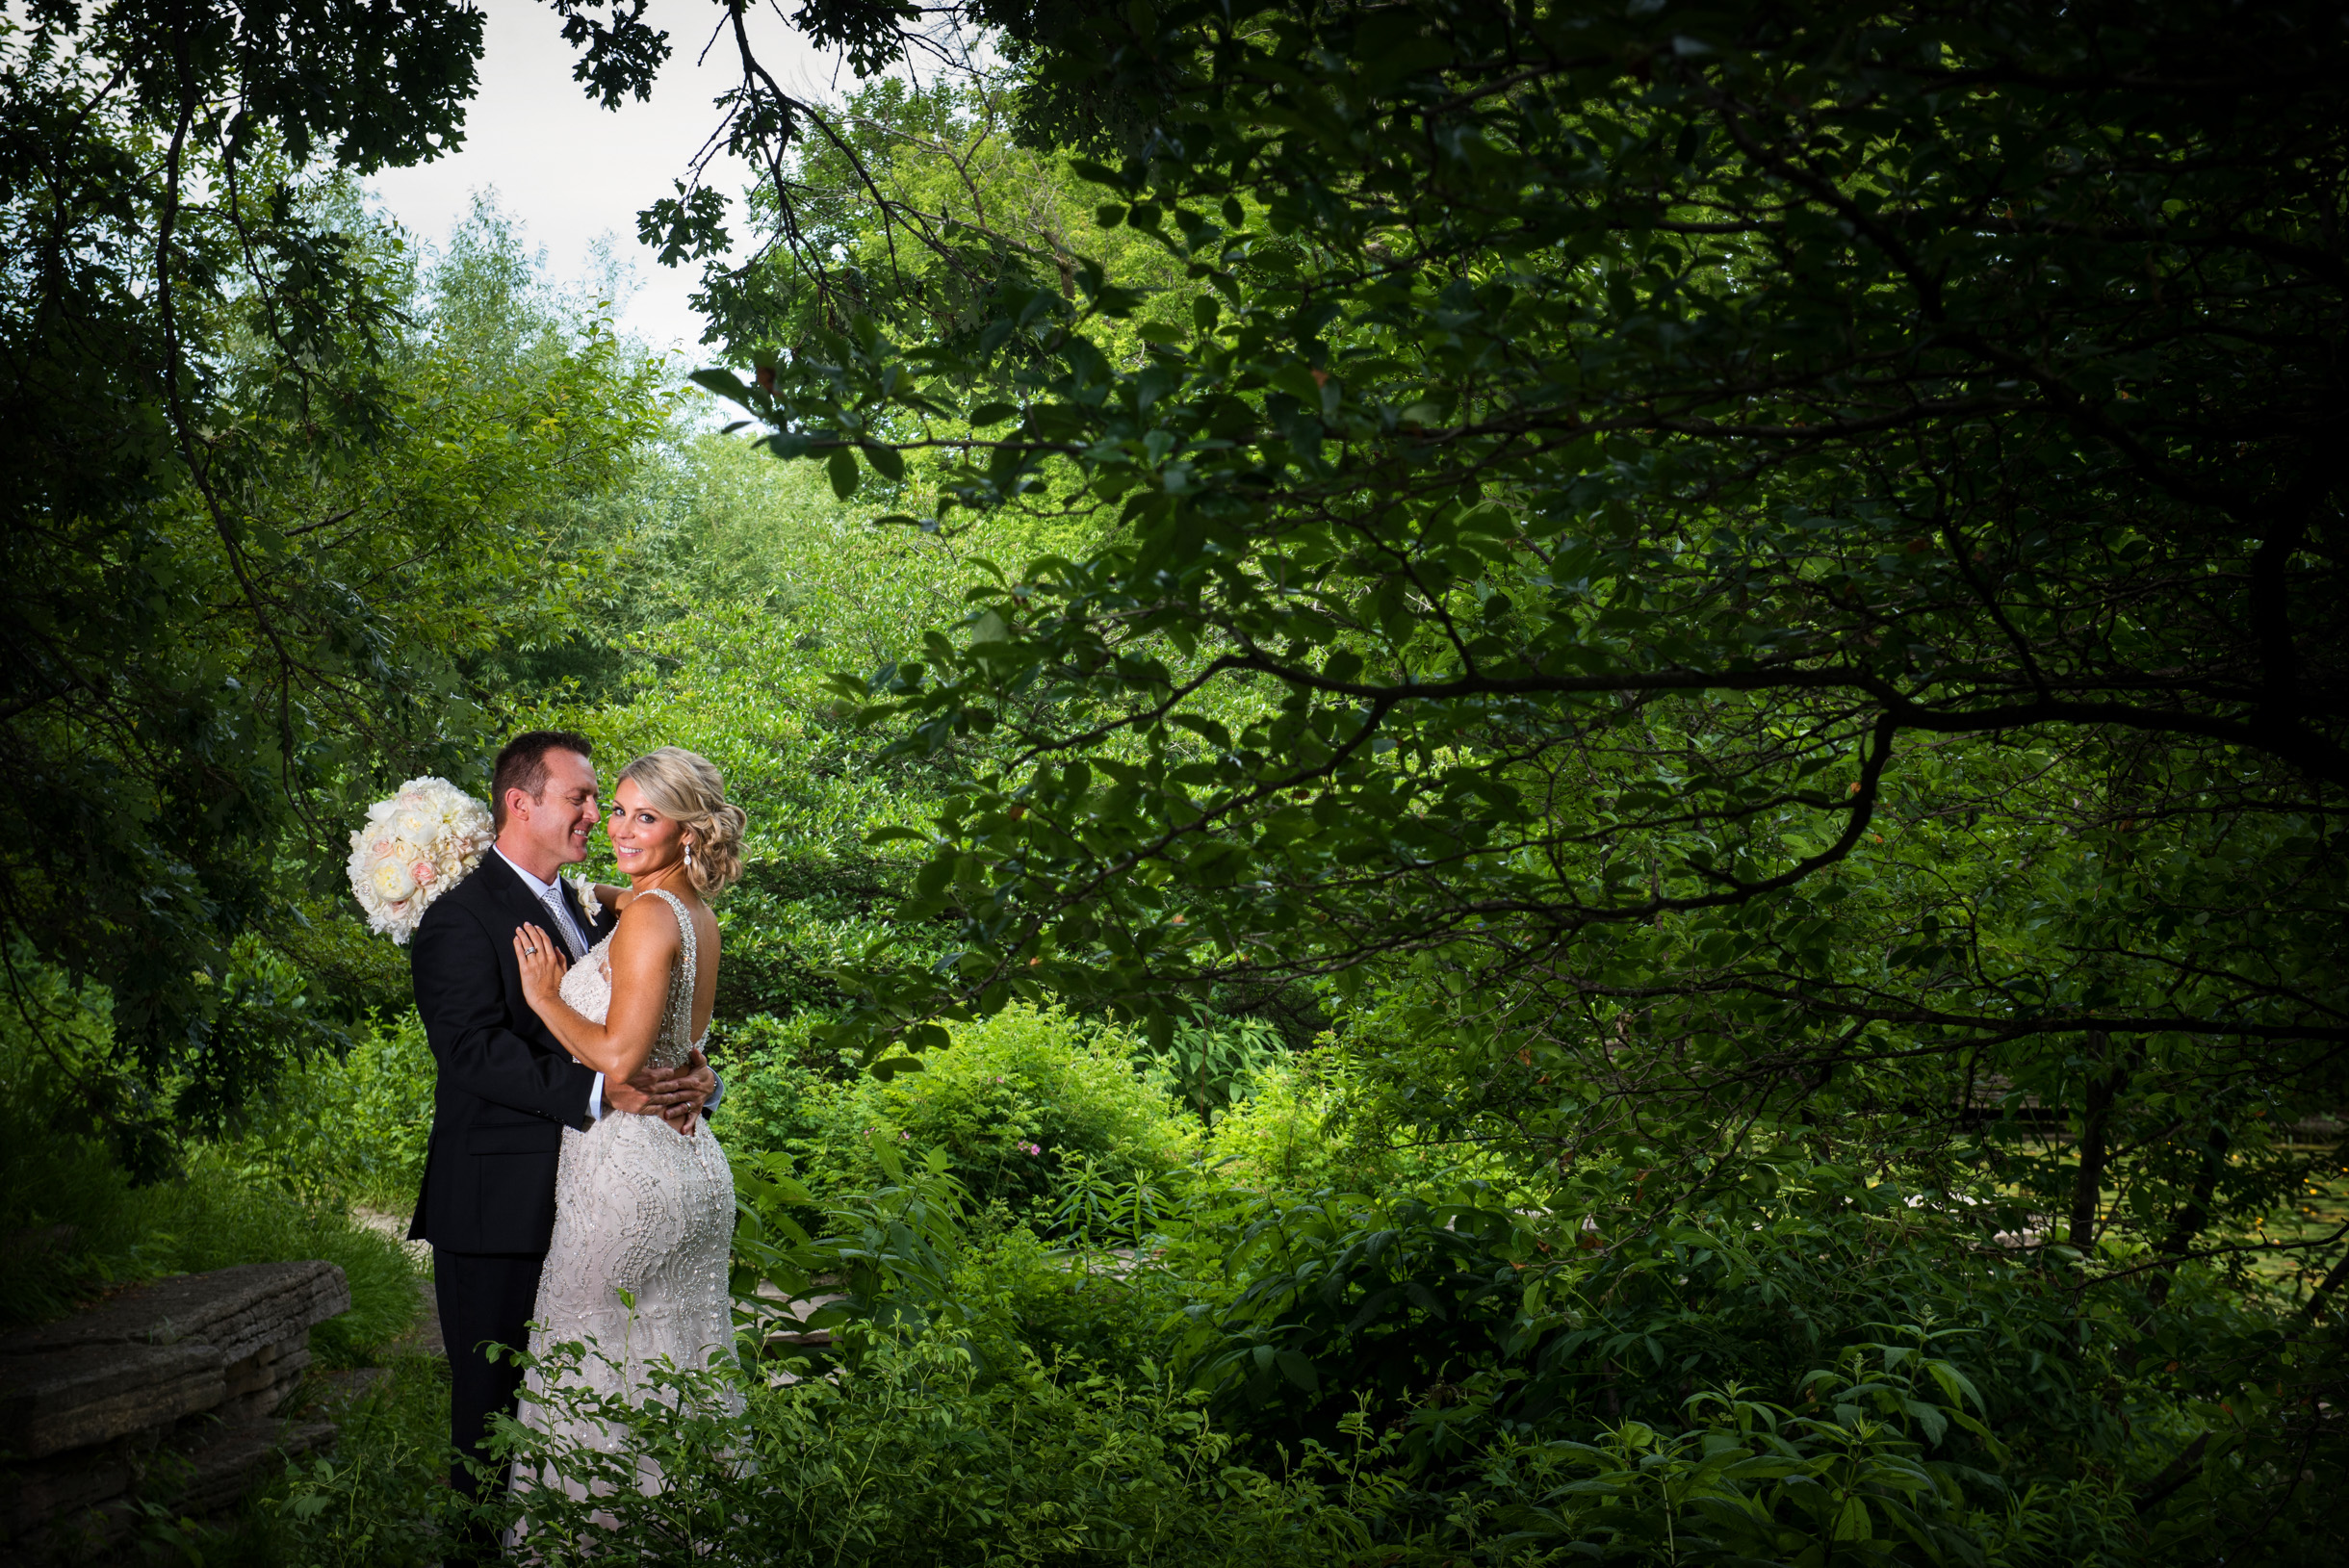 Dramatic Bride and Groom photo in nature surrounded by trees and lush vegetation-039